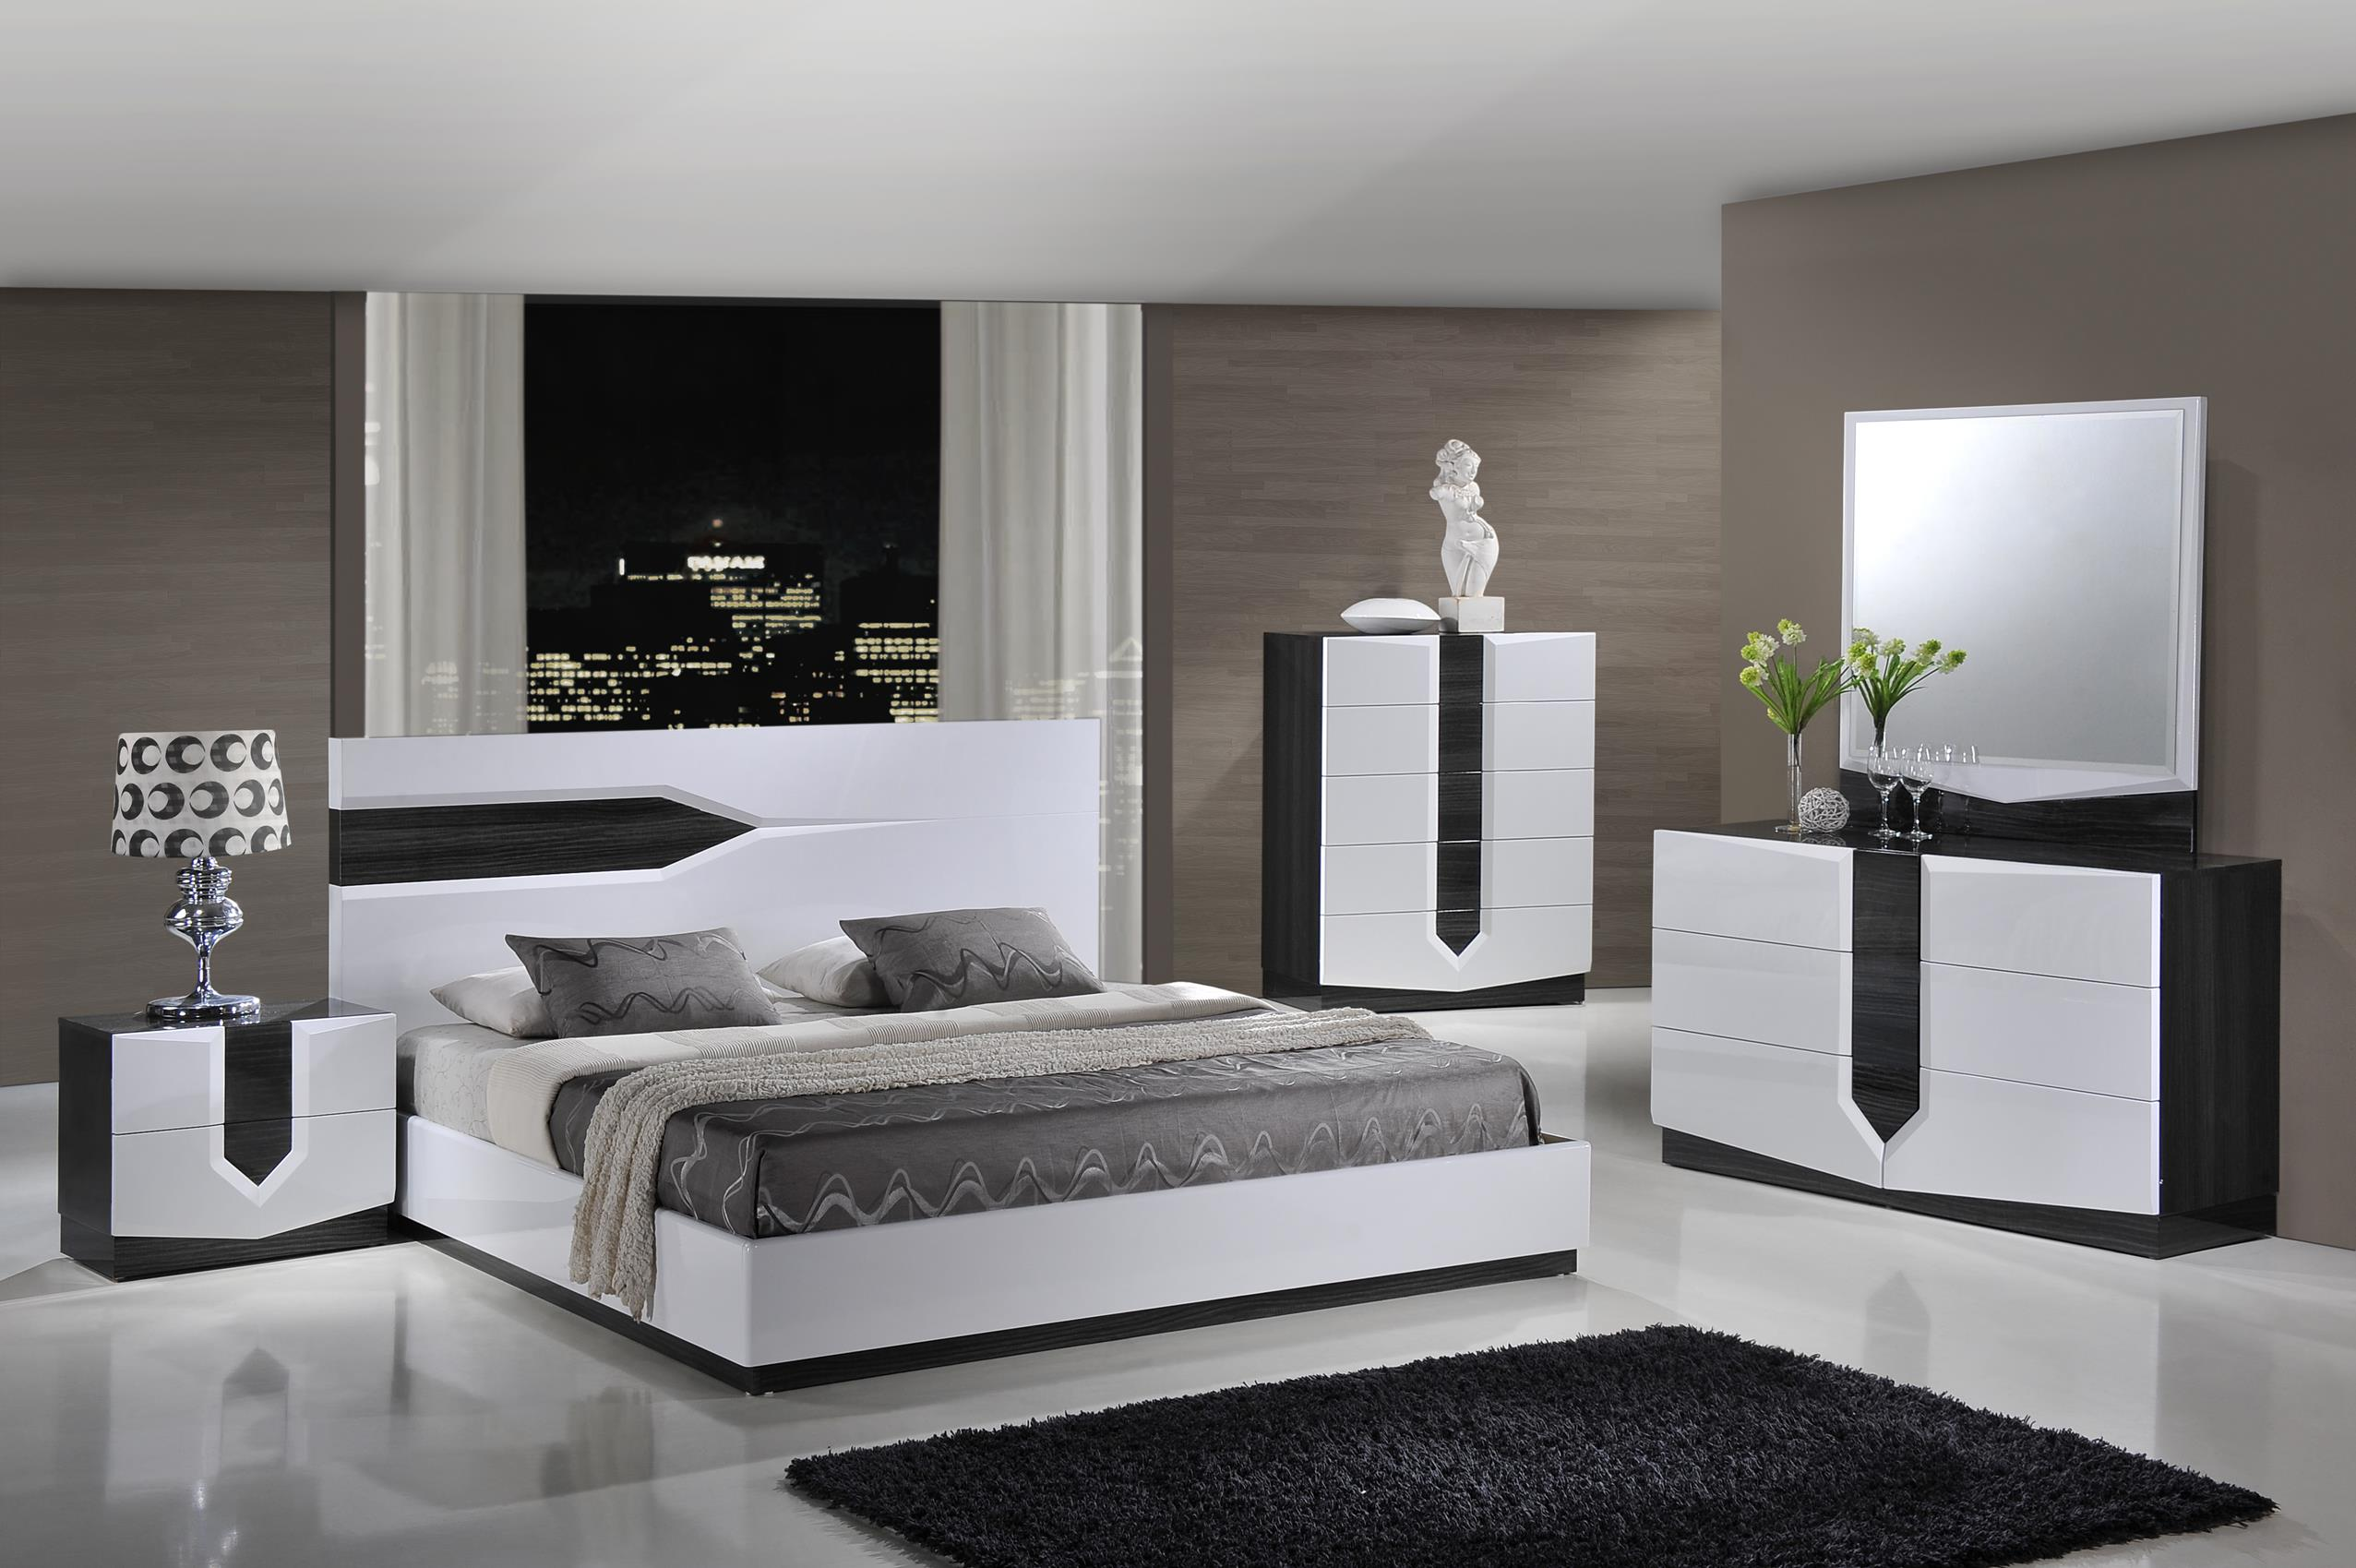 Funky High Gloss Bedroom Furniture Design - HGNV.COM